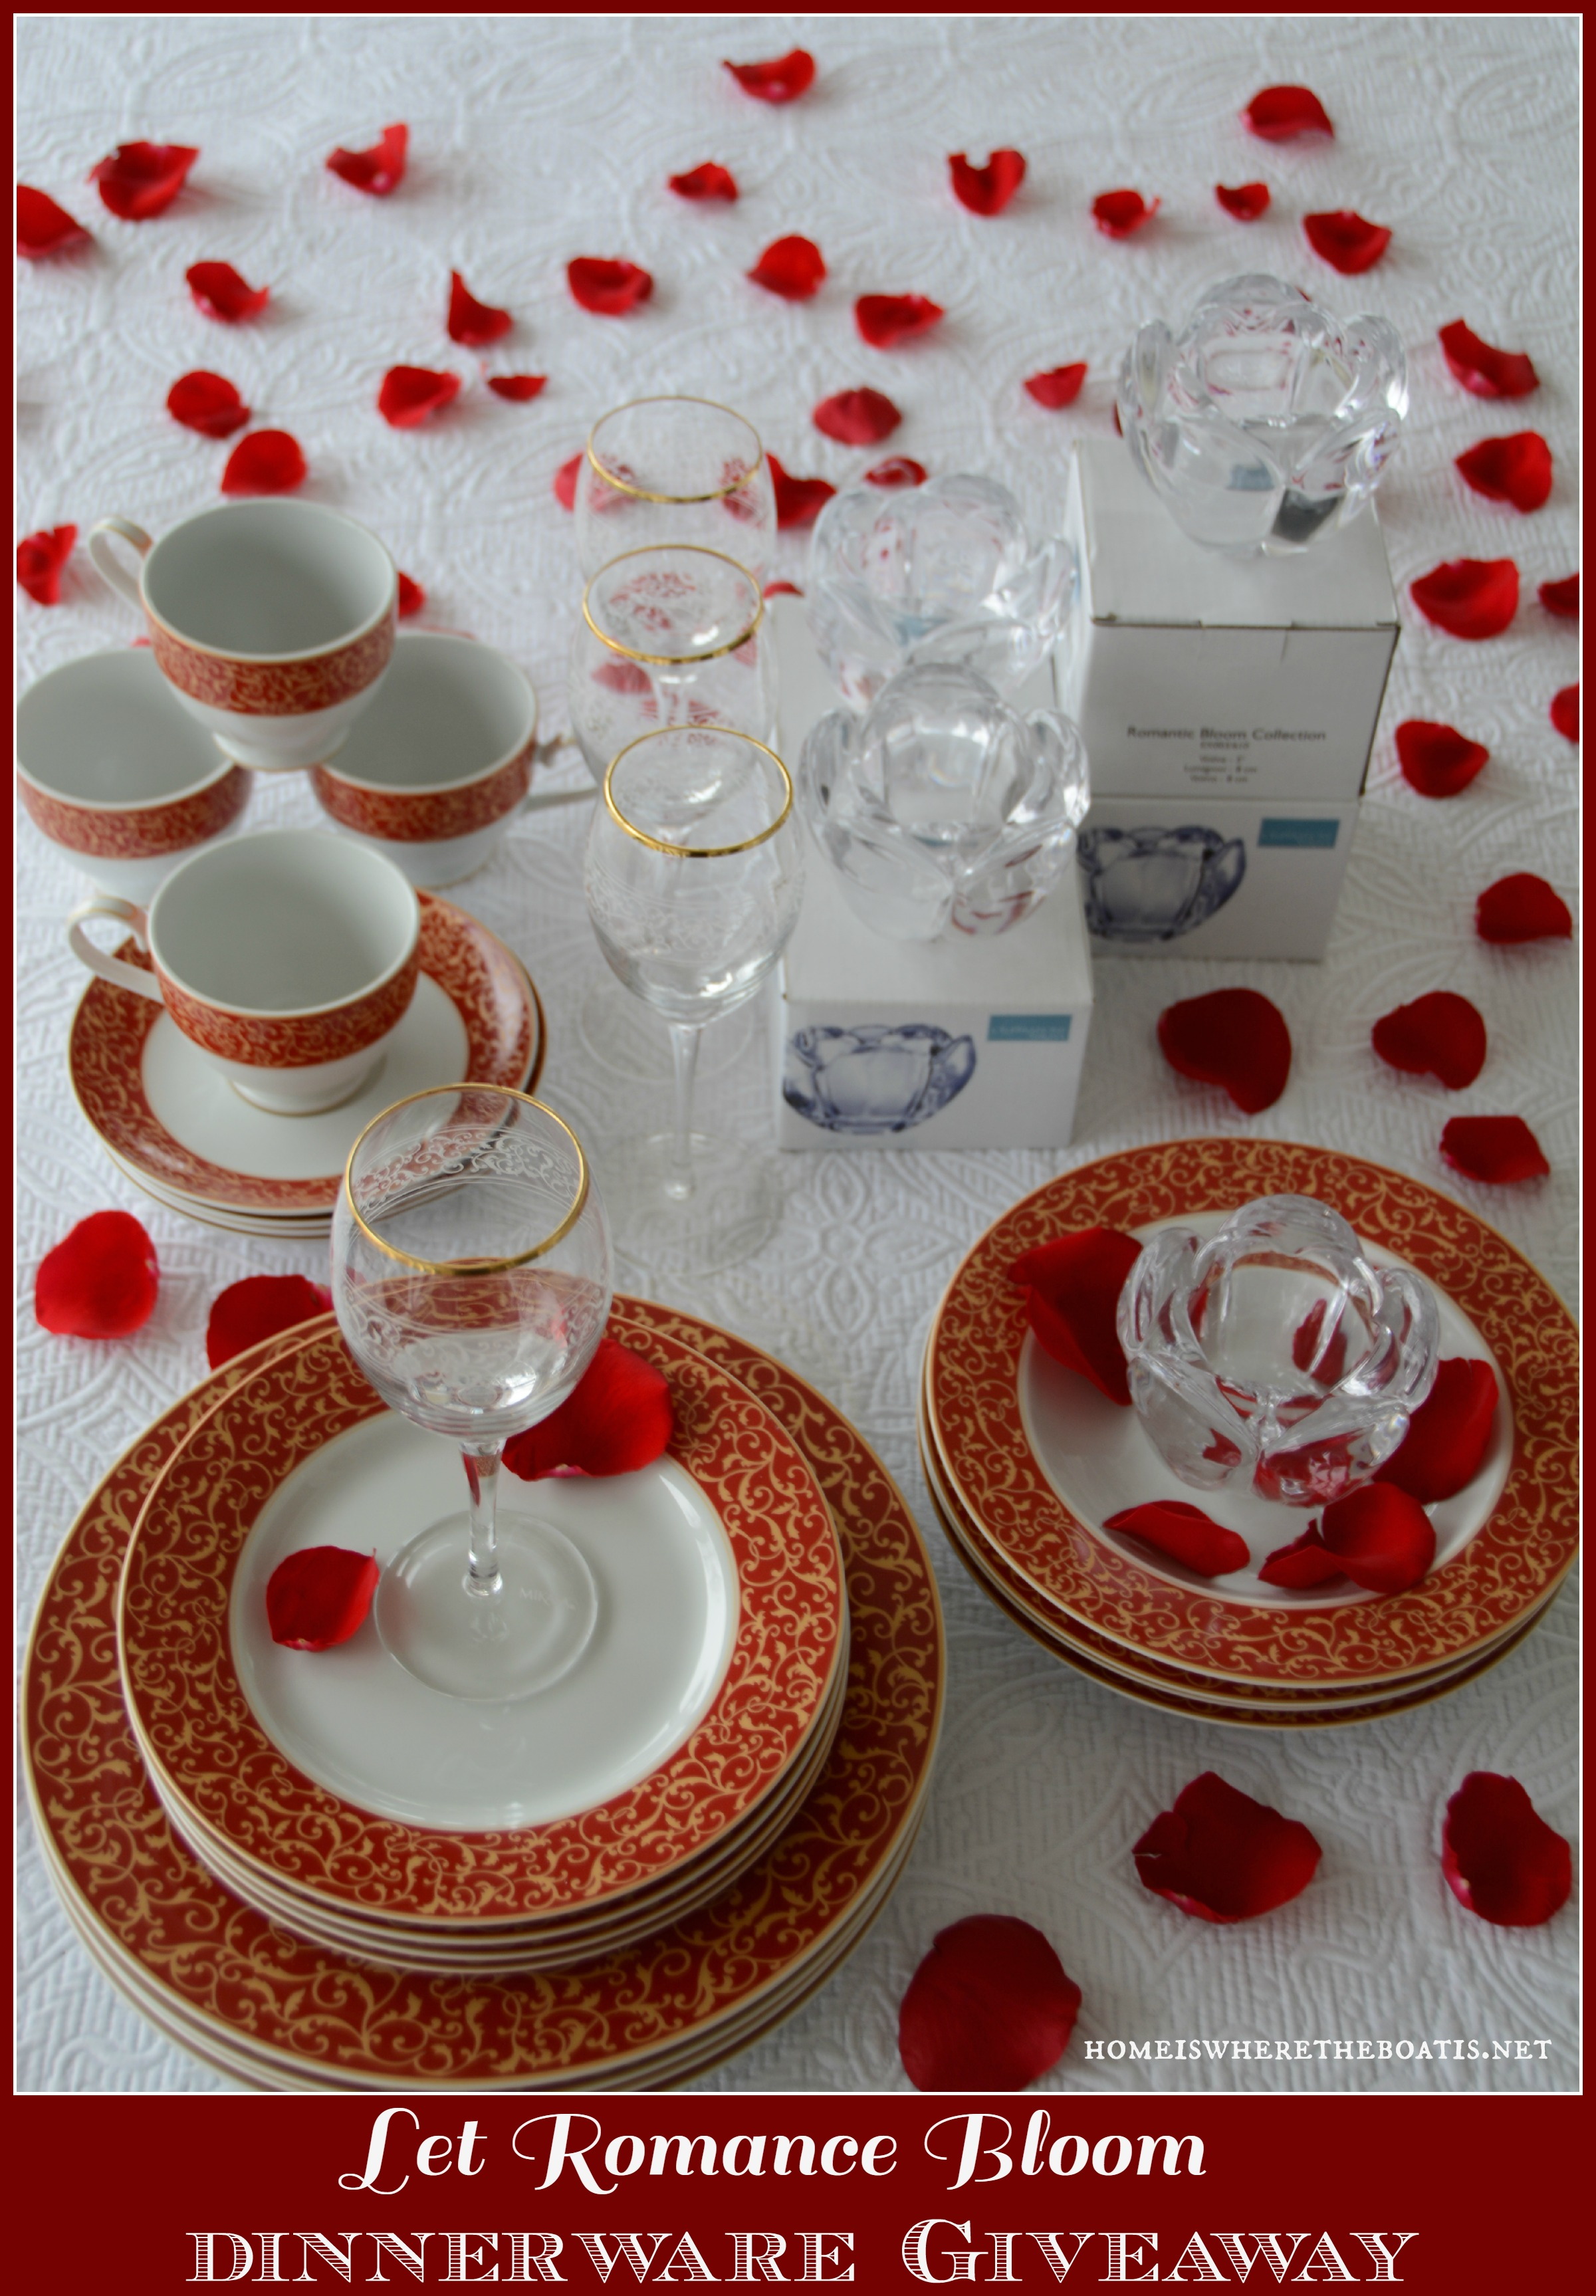 Valentineu0027s Day Dinnerware Giveaway & Let Romance Bloom on Valentineu0027s Day and Dinnerware Giveaway! u2013 Home ...